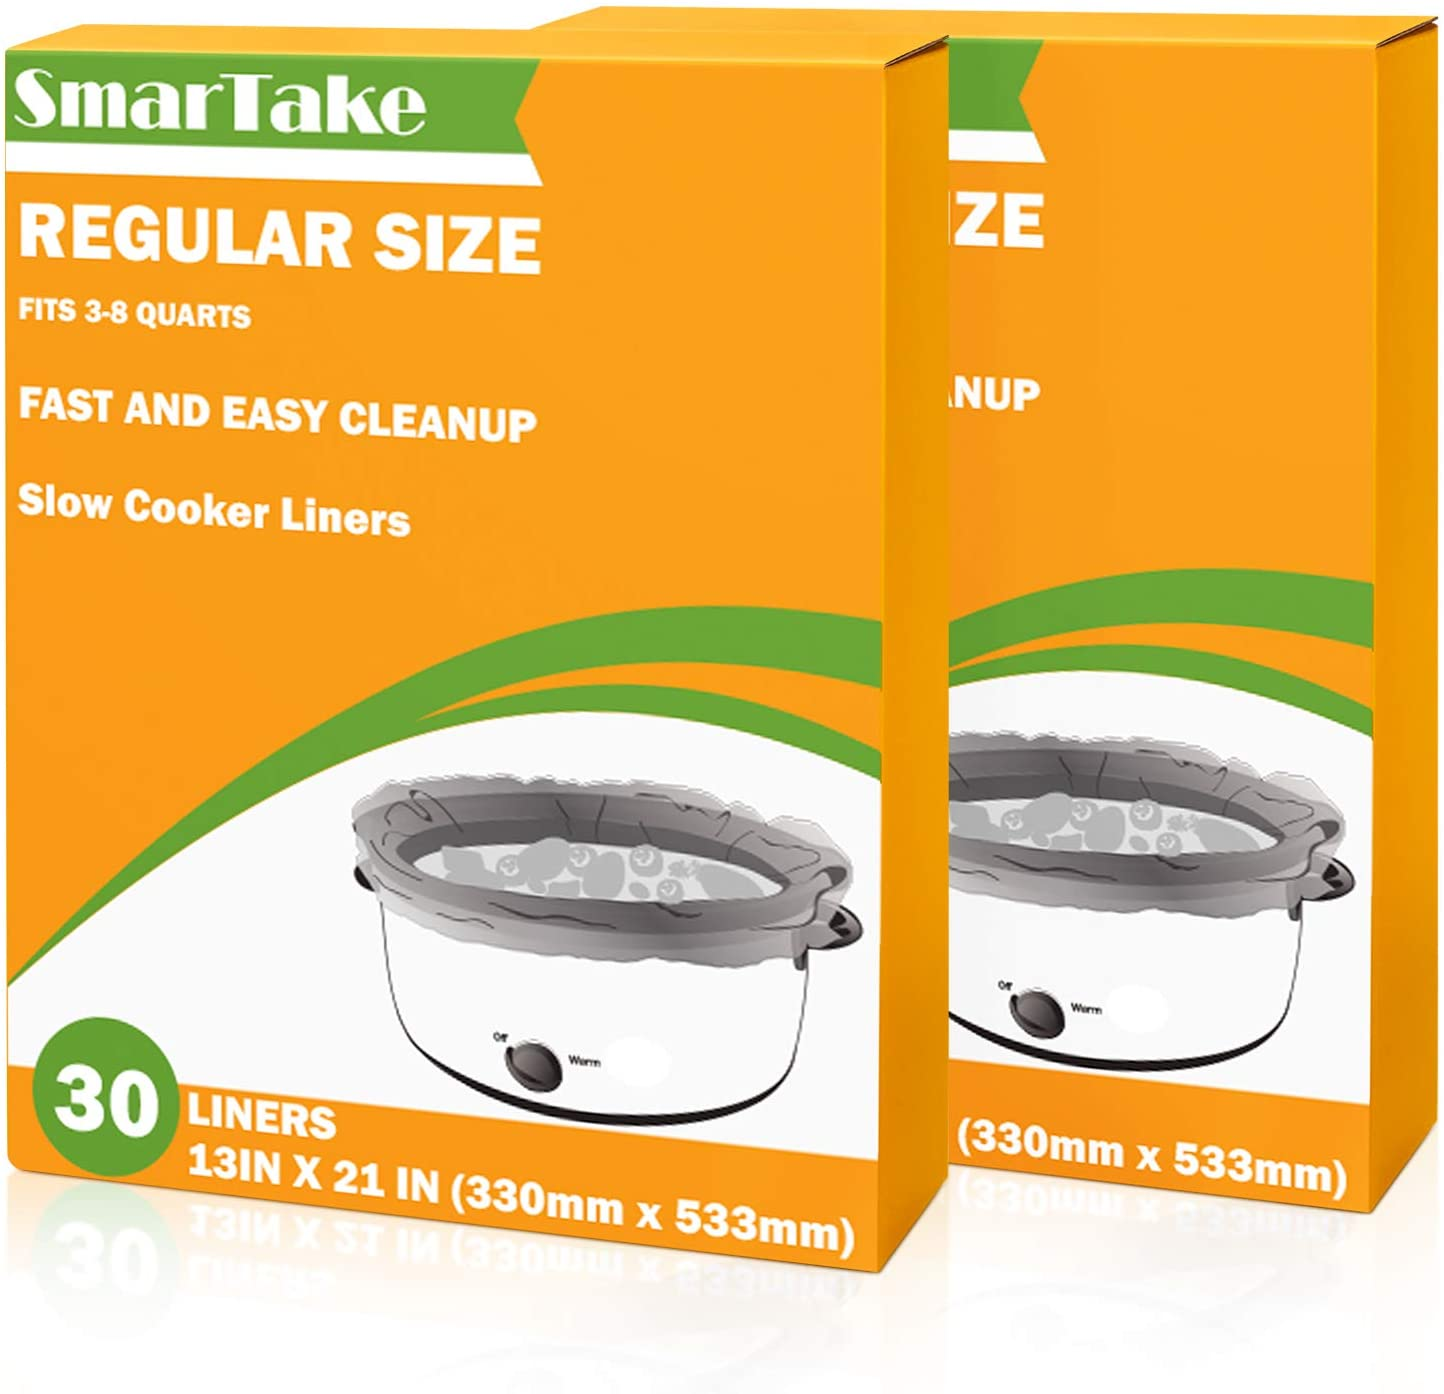 SMARTAKE Slow Cooker Liners, 13 × 21 Inches Disposable Cooking Bags, Easy Clean-Up Plastic Bags, Fit 3QT to 8QT, for Slow Cooker, Crockpot, Aluminum Cooking Trays, Pans, 2 Packs (60 Liners)